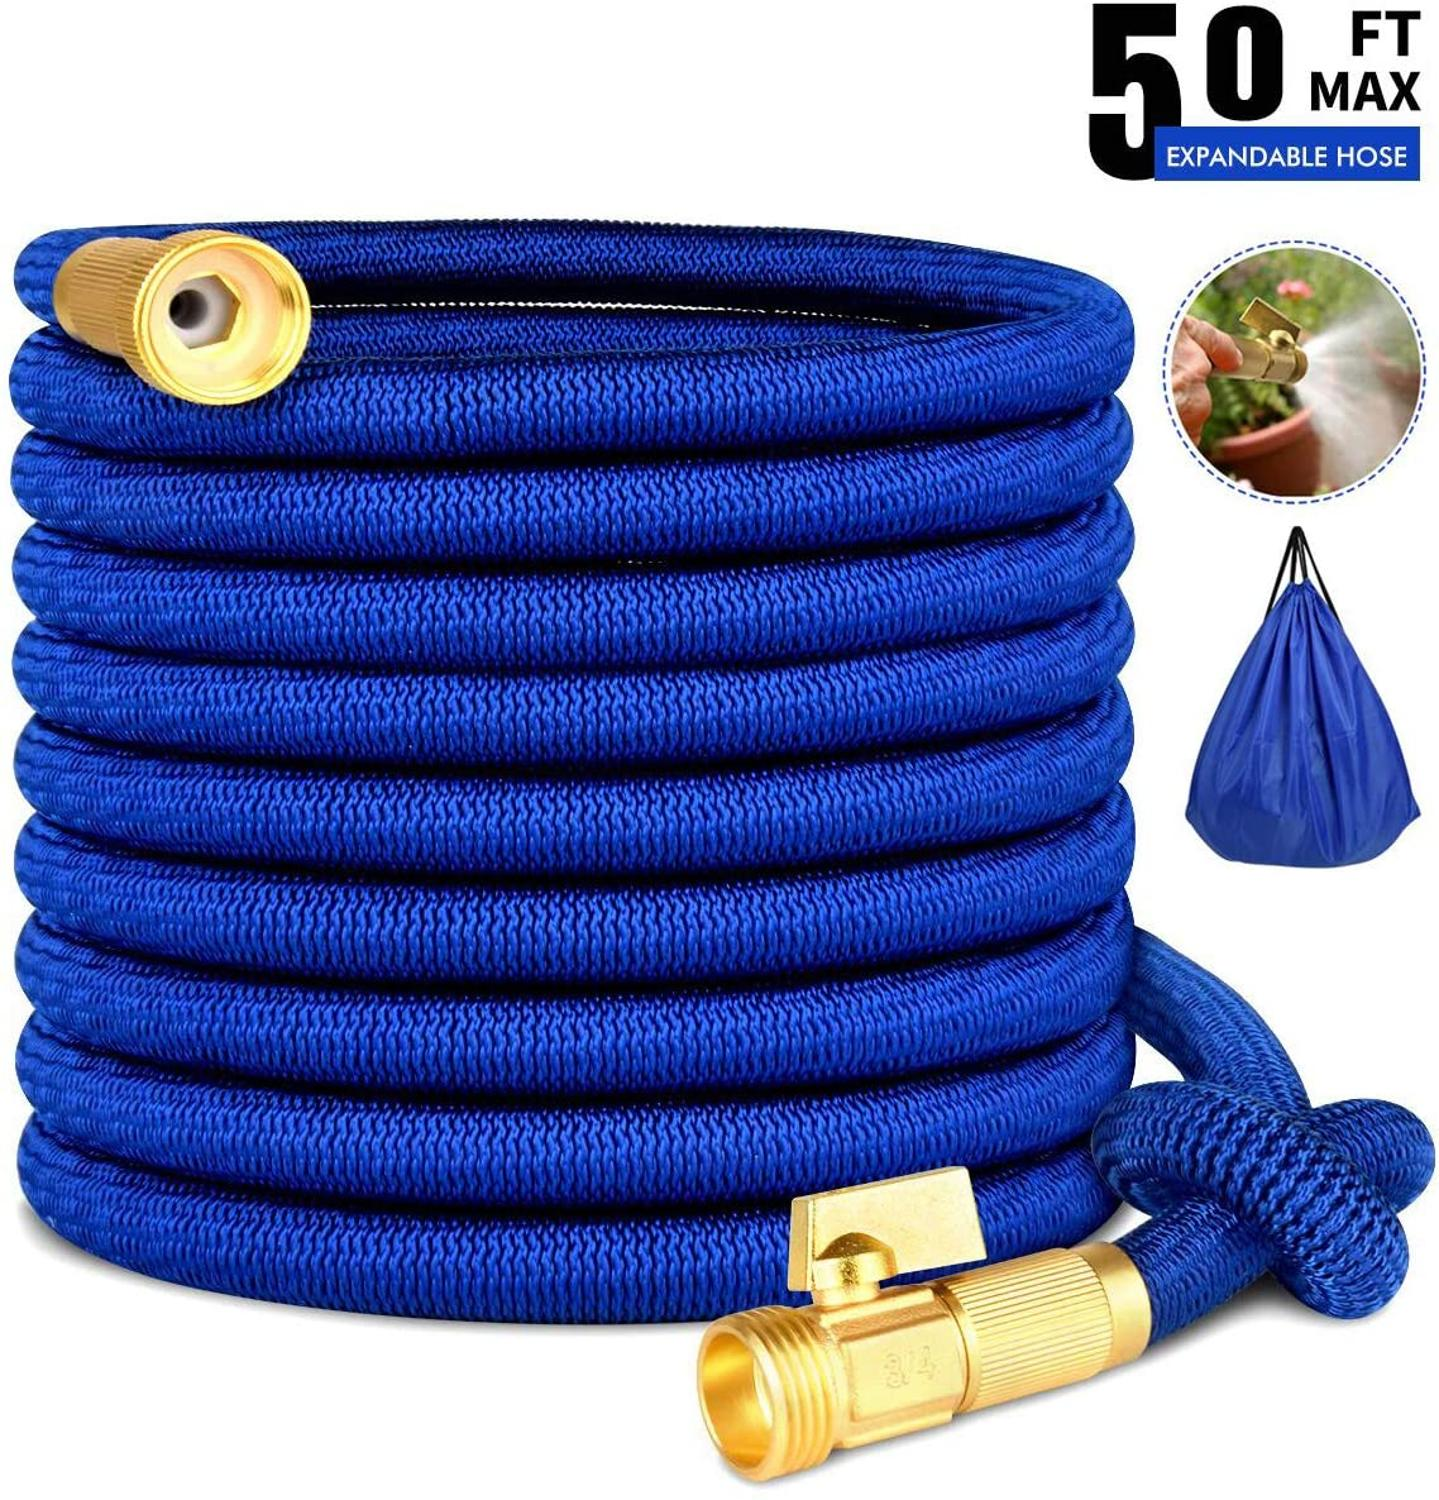 Expandable Garden Hose Flexible Drip Irrigation Tube Watering Hose High Pressure Car Wash Expandable Garden Magic Hose Pipe